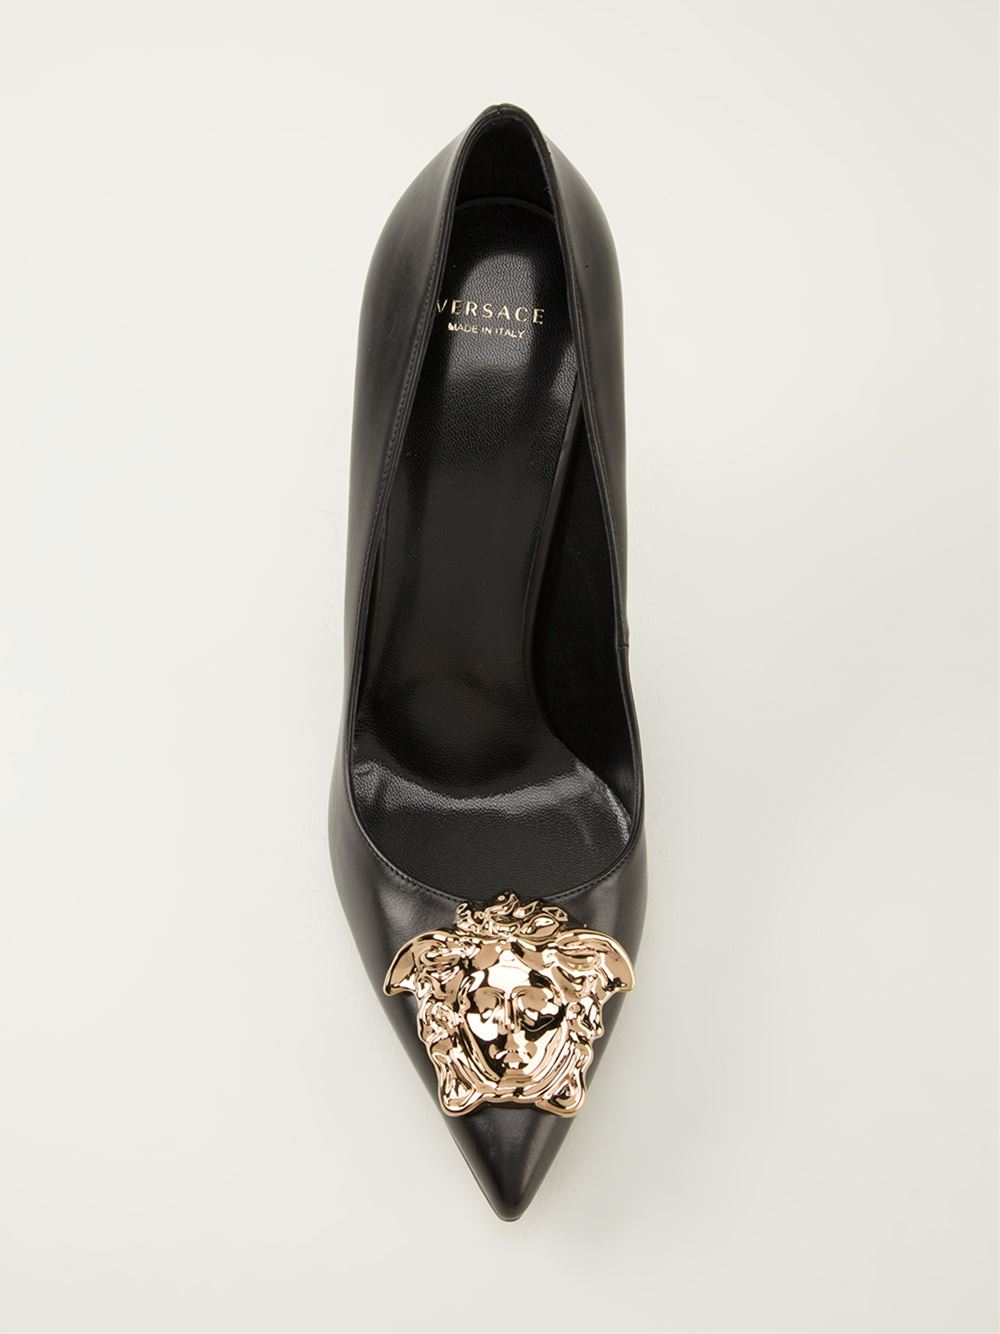 372a48848 Versace 'idol' Pumps - Elite - Farfetch.com